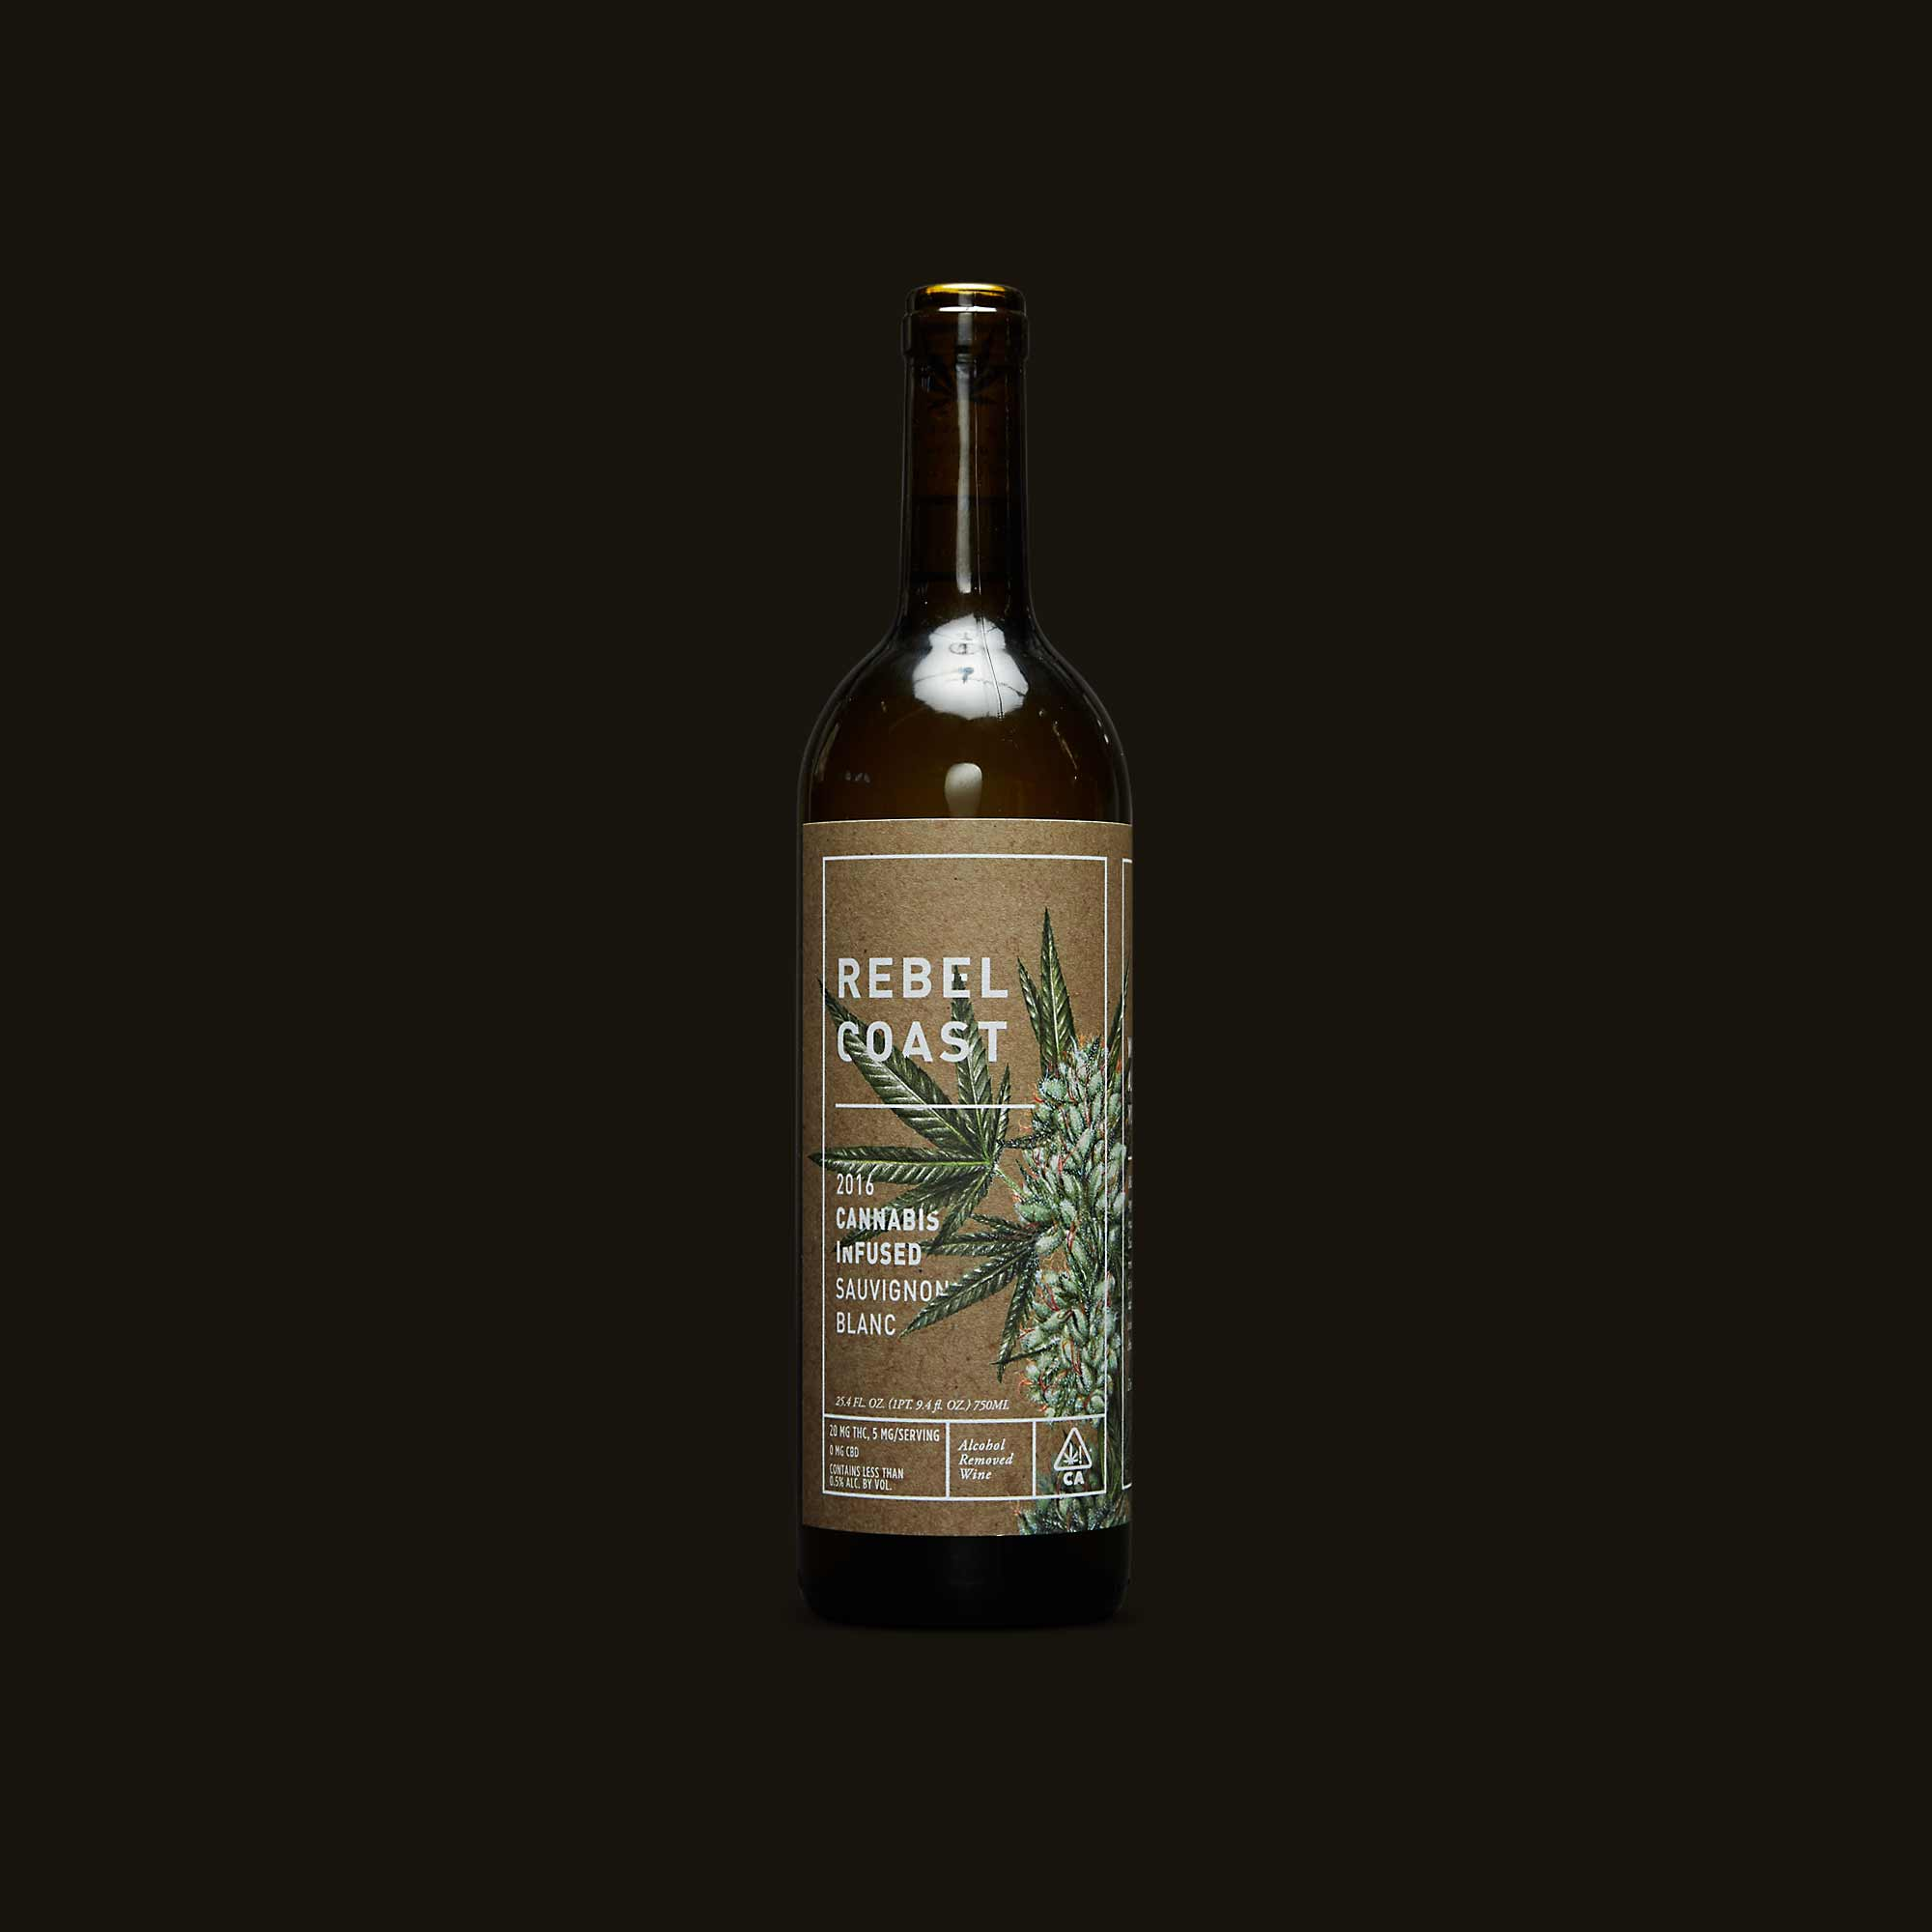 Rebel Coast 2016 Sauvignon Blanc